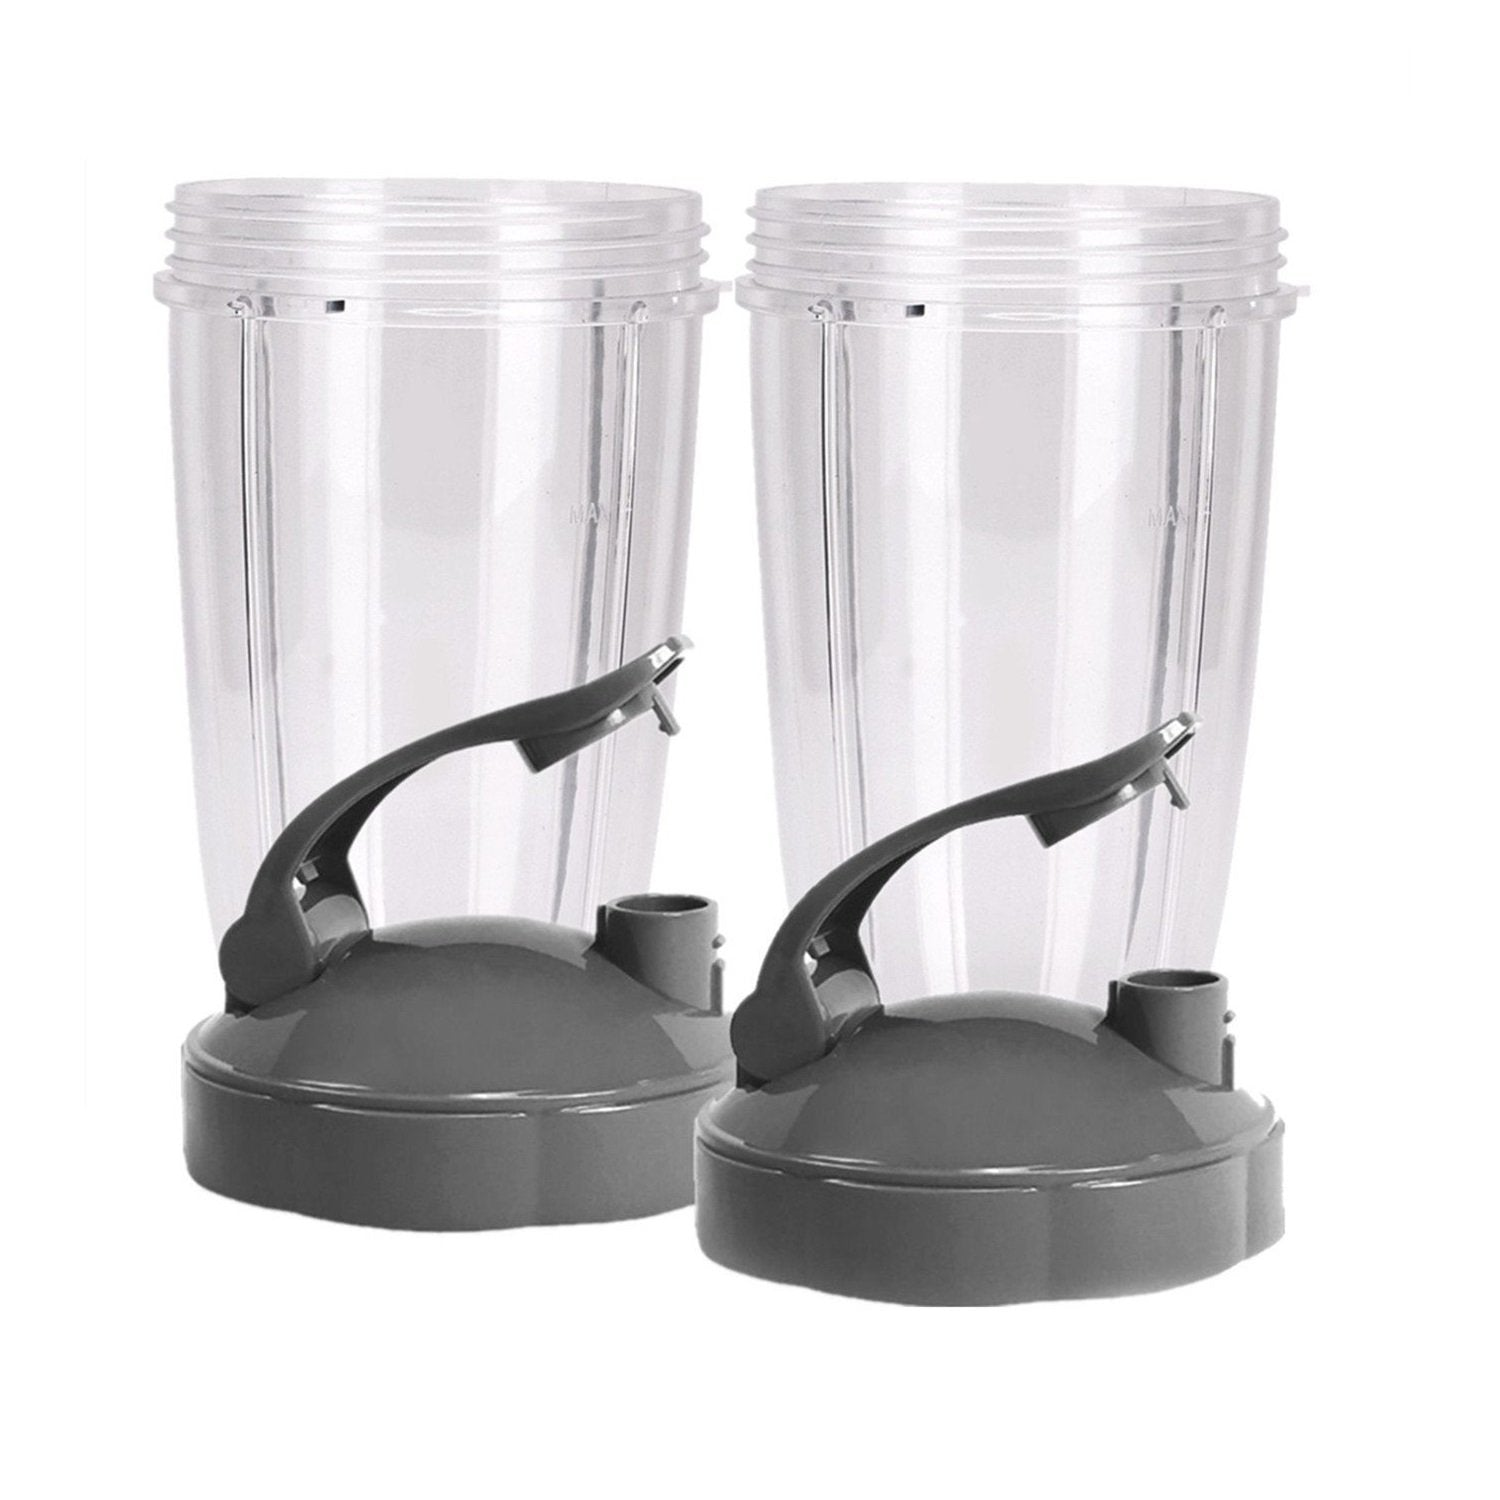 KitchenFX Nutribullet Replacement Cups with Lids - Set of 2 | Monthly Madness